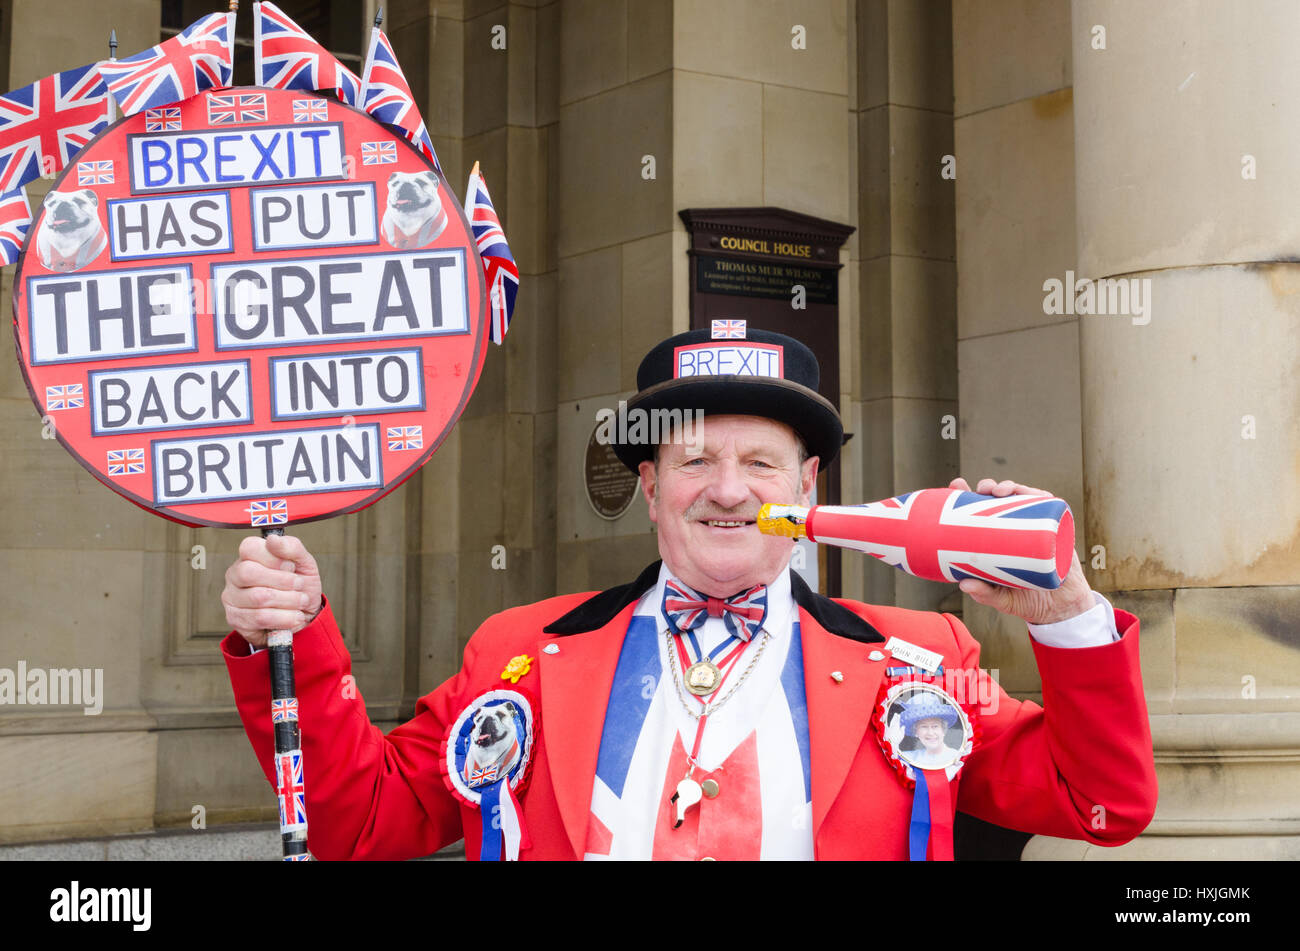 Birmingham, UK. 29th Mar, 2017. Brexit supporter 'John Bull' celebrates the triggering of Article 50 by - Stock Image